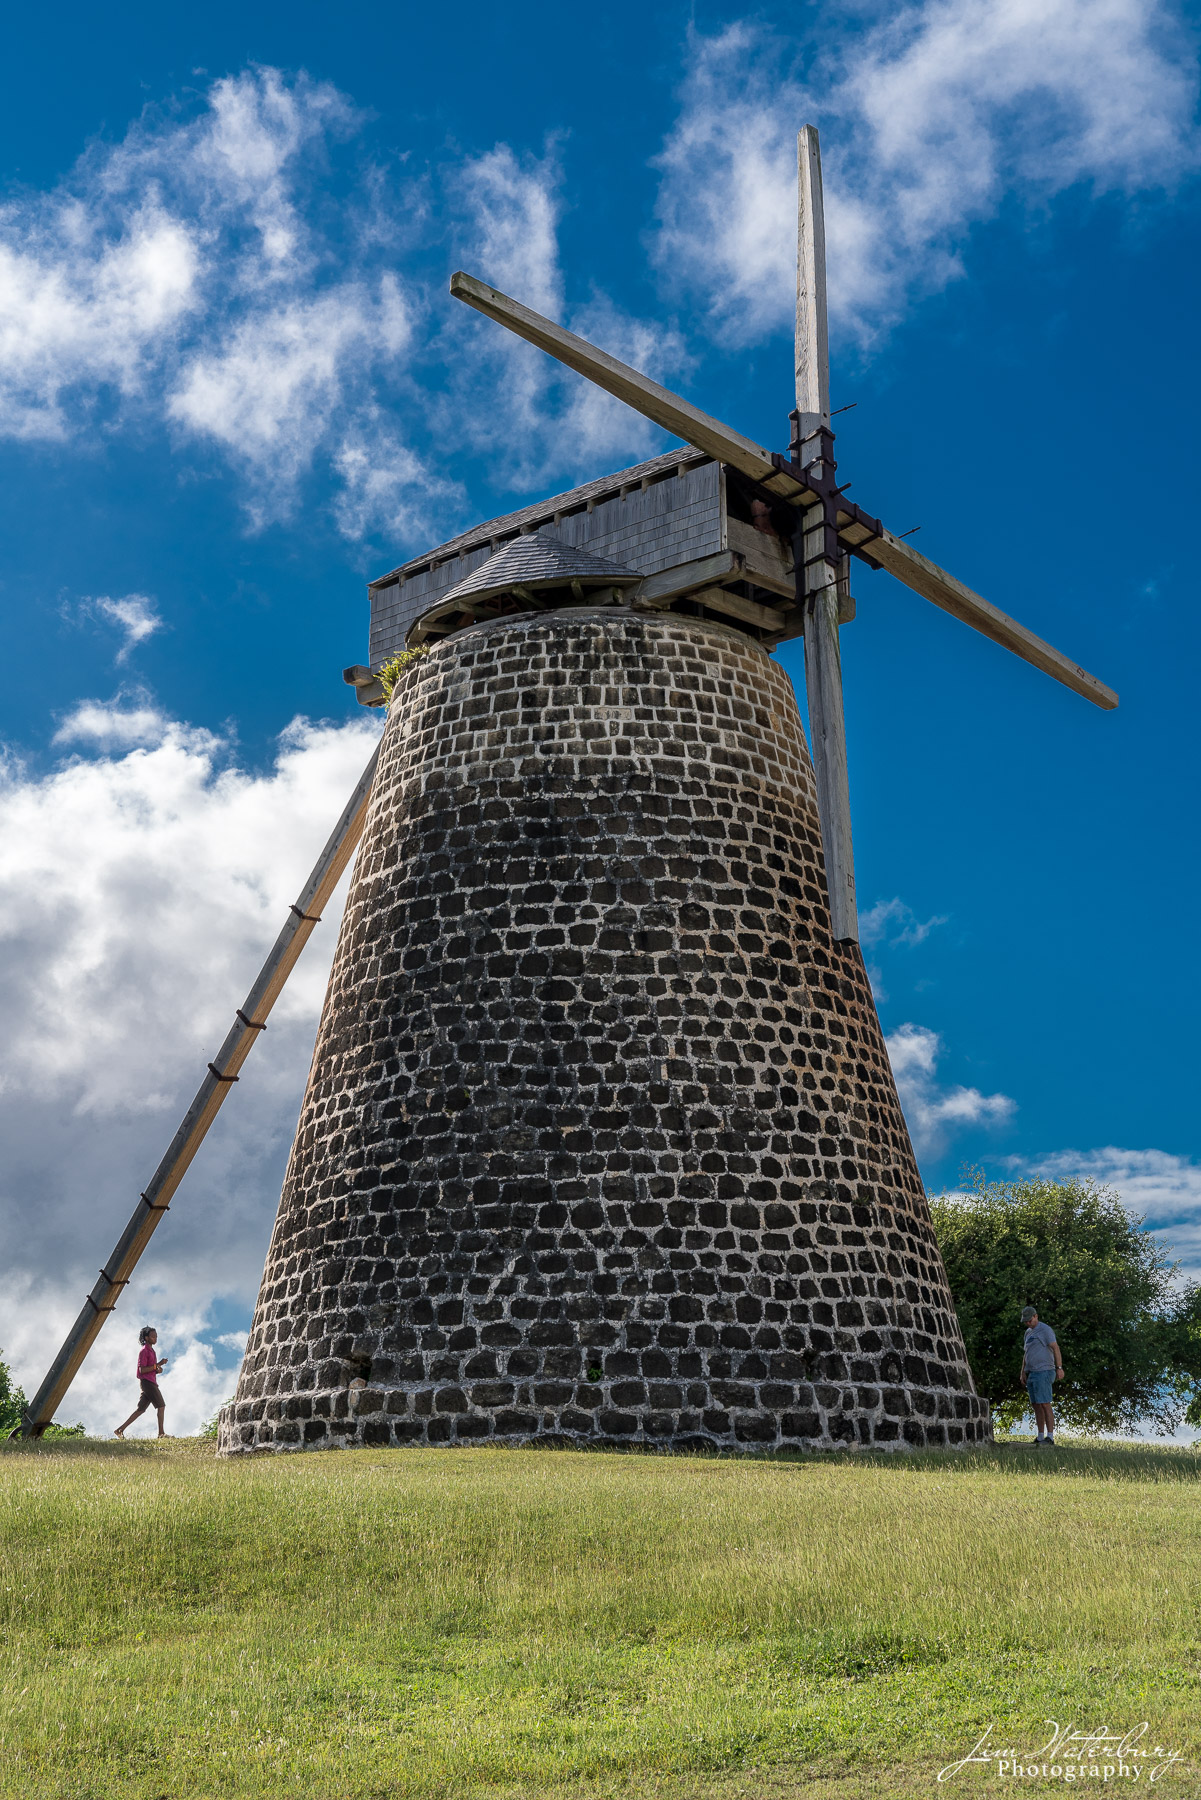 Restored windmill at Betty's Hope, a historic sugar plantation on the island of Antigua.